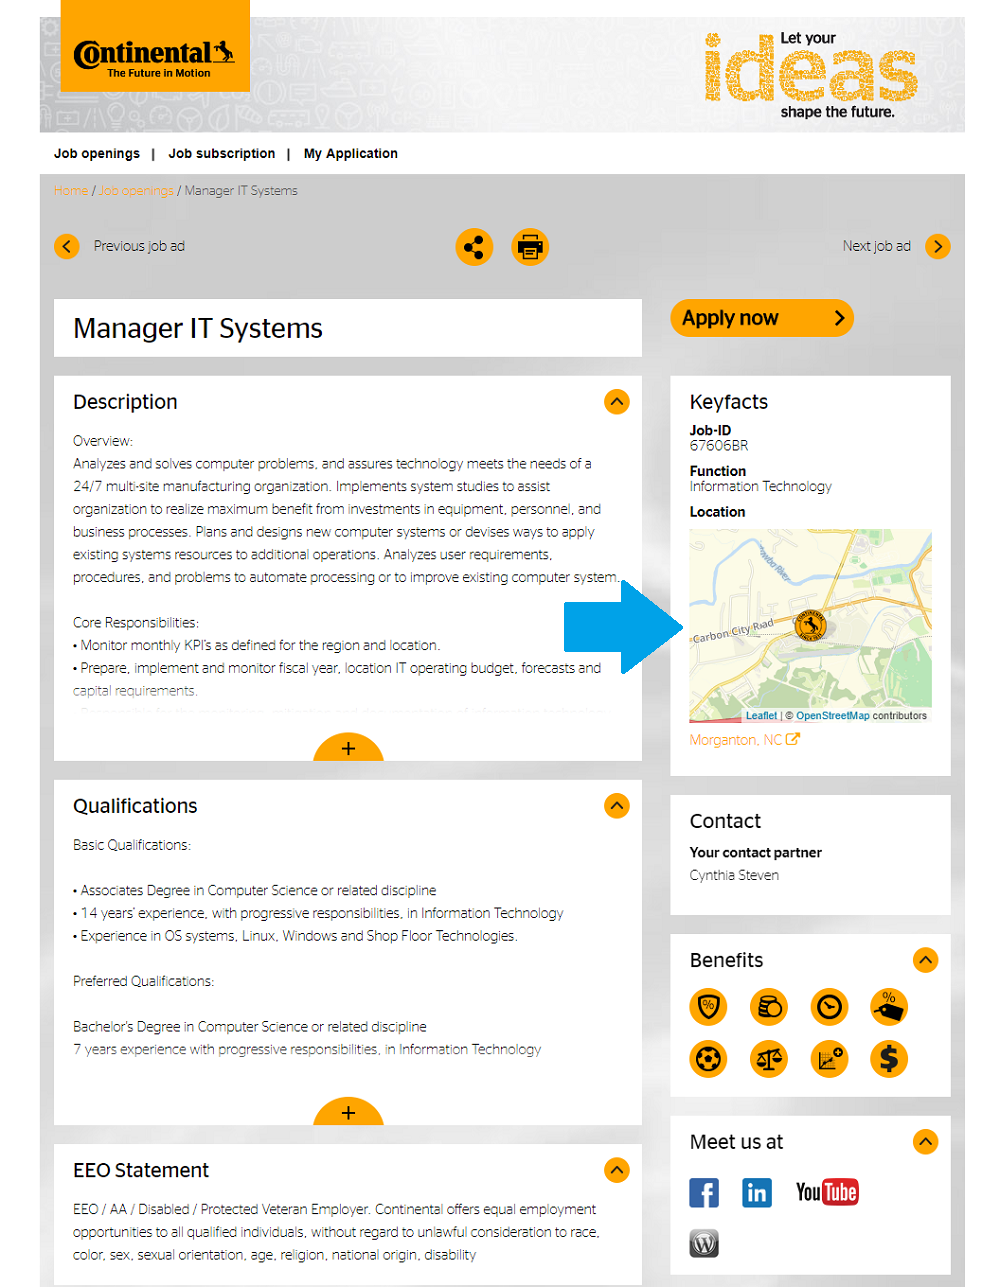 Continental Tires job description with map